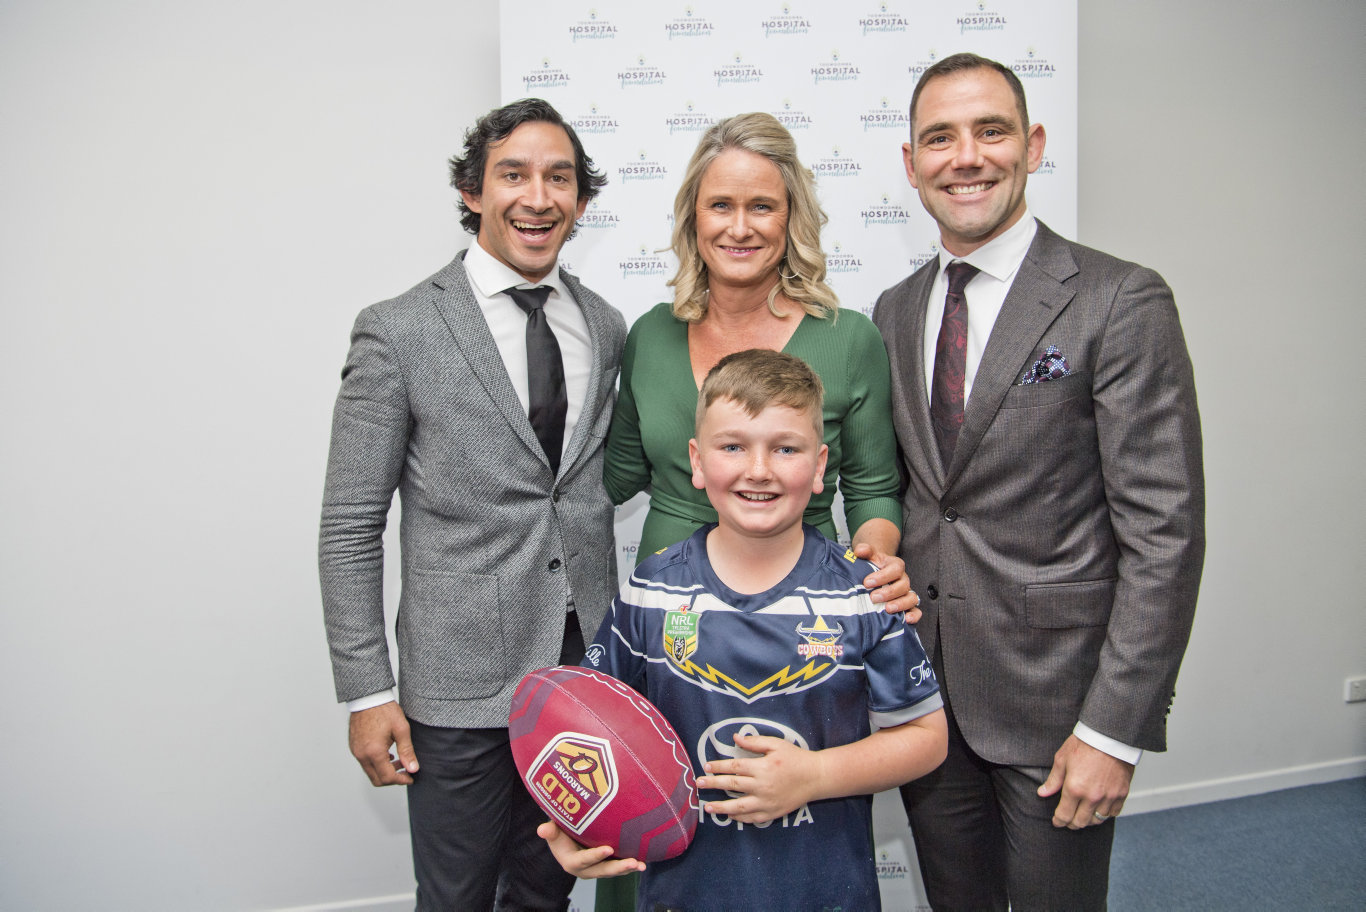 ( From left ) Johnathan Thurston, Alison Kennedy and Cameron Smith with Wil Sorensen ( in front ) at the Toowoomba Hospital Foundations Legends at Their Game function at Rumours International. Friday, 23rd Aug, 2019.